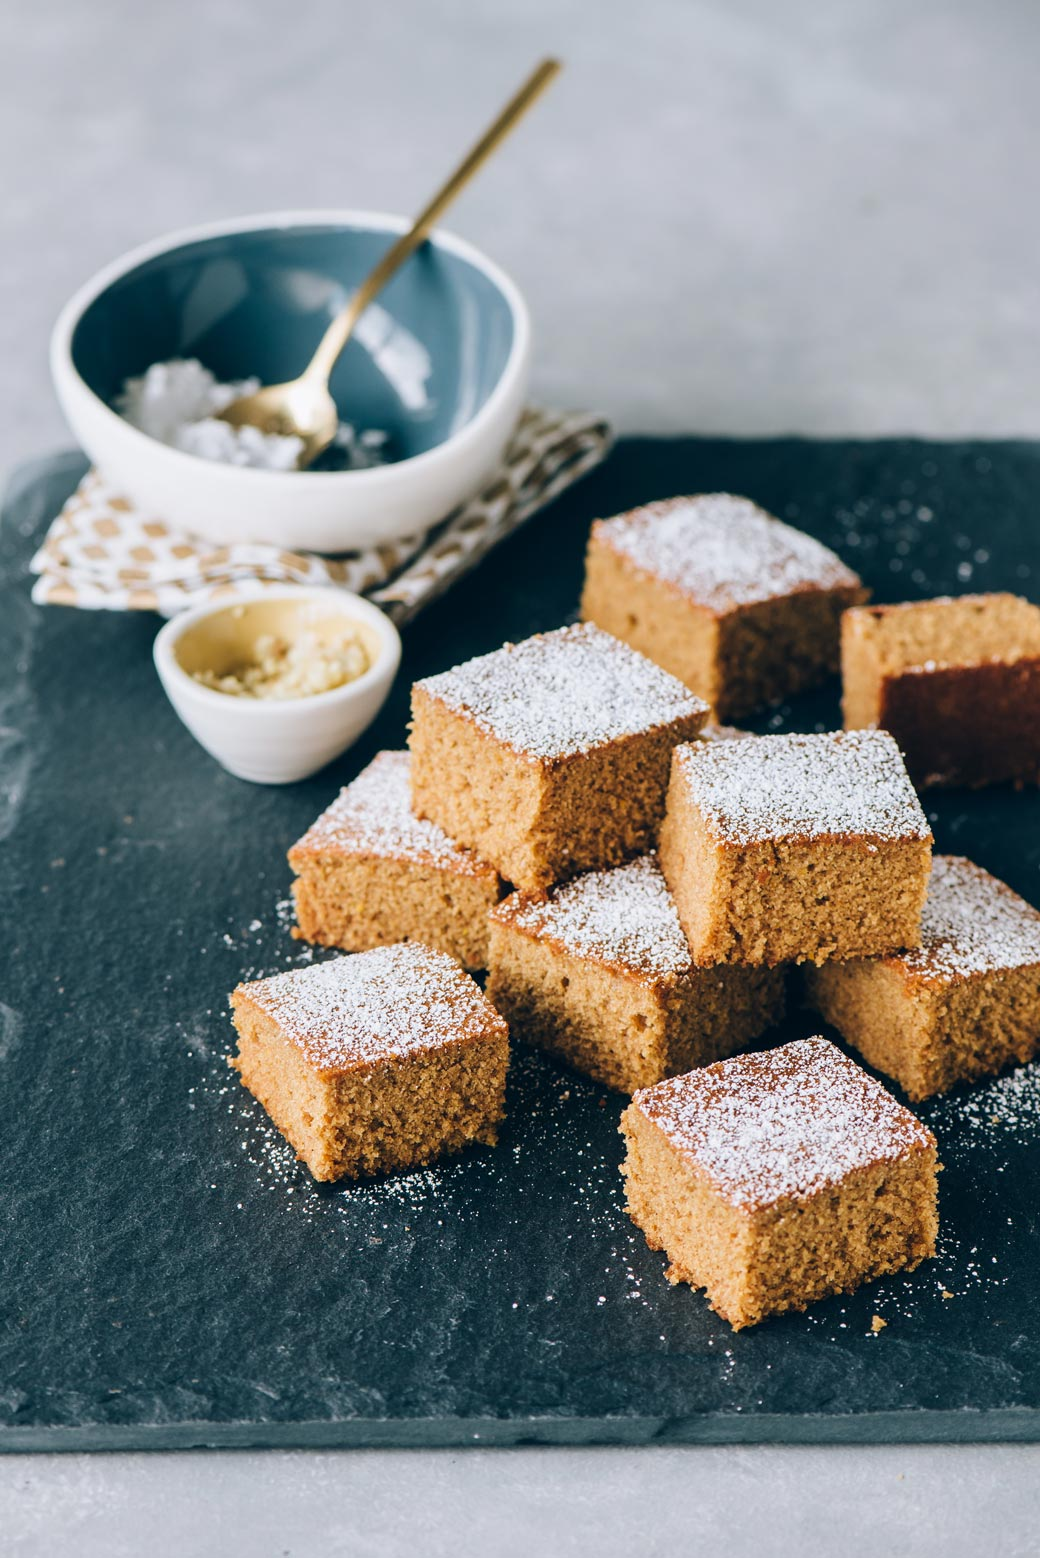 Rachel Korinek Photographer Gingerbread Snack Cake  Click to check out my latest food photography projects.  #twolovesstudio #beautifulcuisine #foodbloggerpro #foodphotography #learnfoodphotography #foodblogger #learnphotography #foodstyling #lightingtips #naturallight #foodphotographer